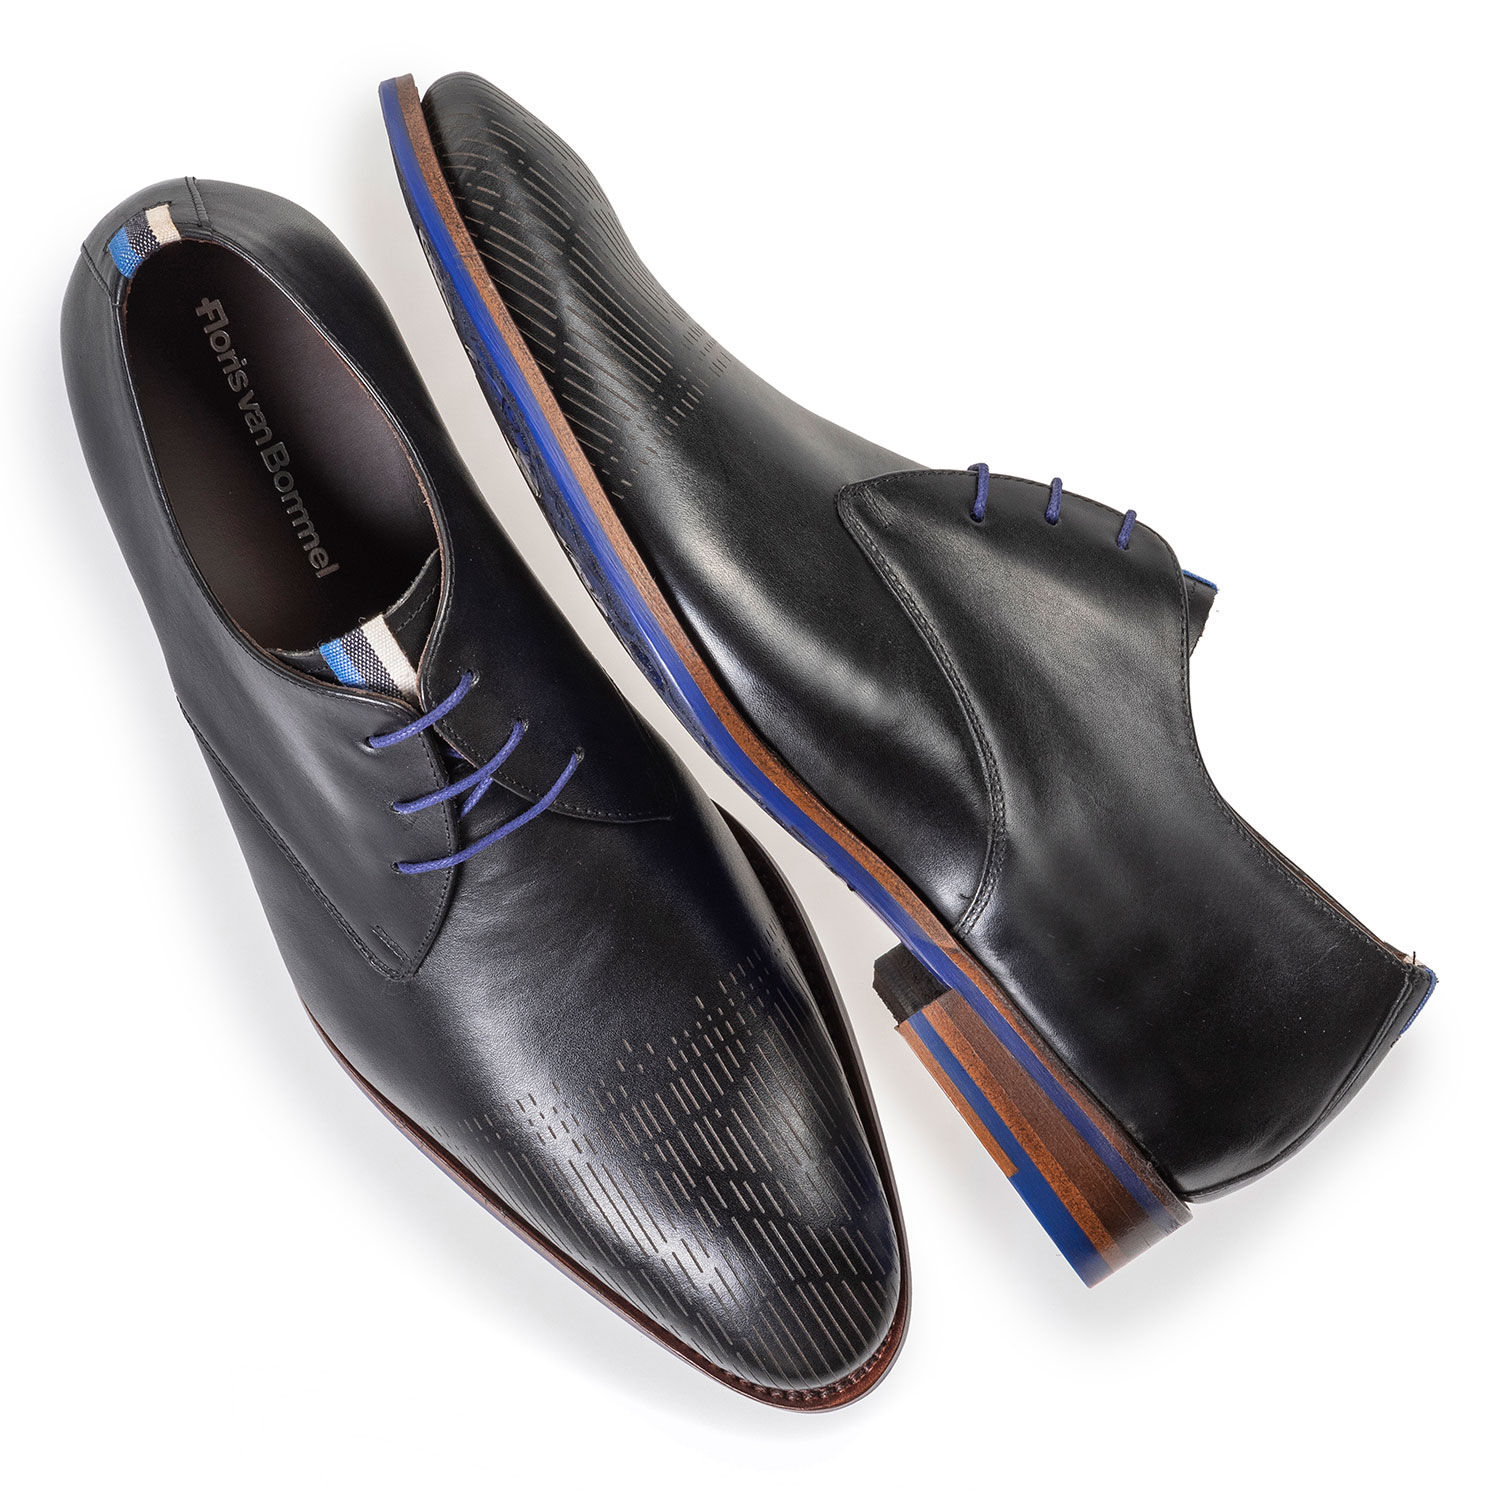 18276/02 - Black calf leather lace shoe